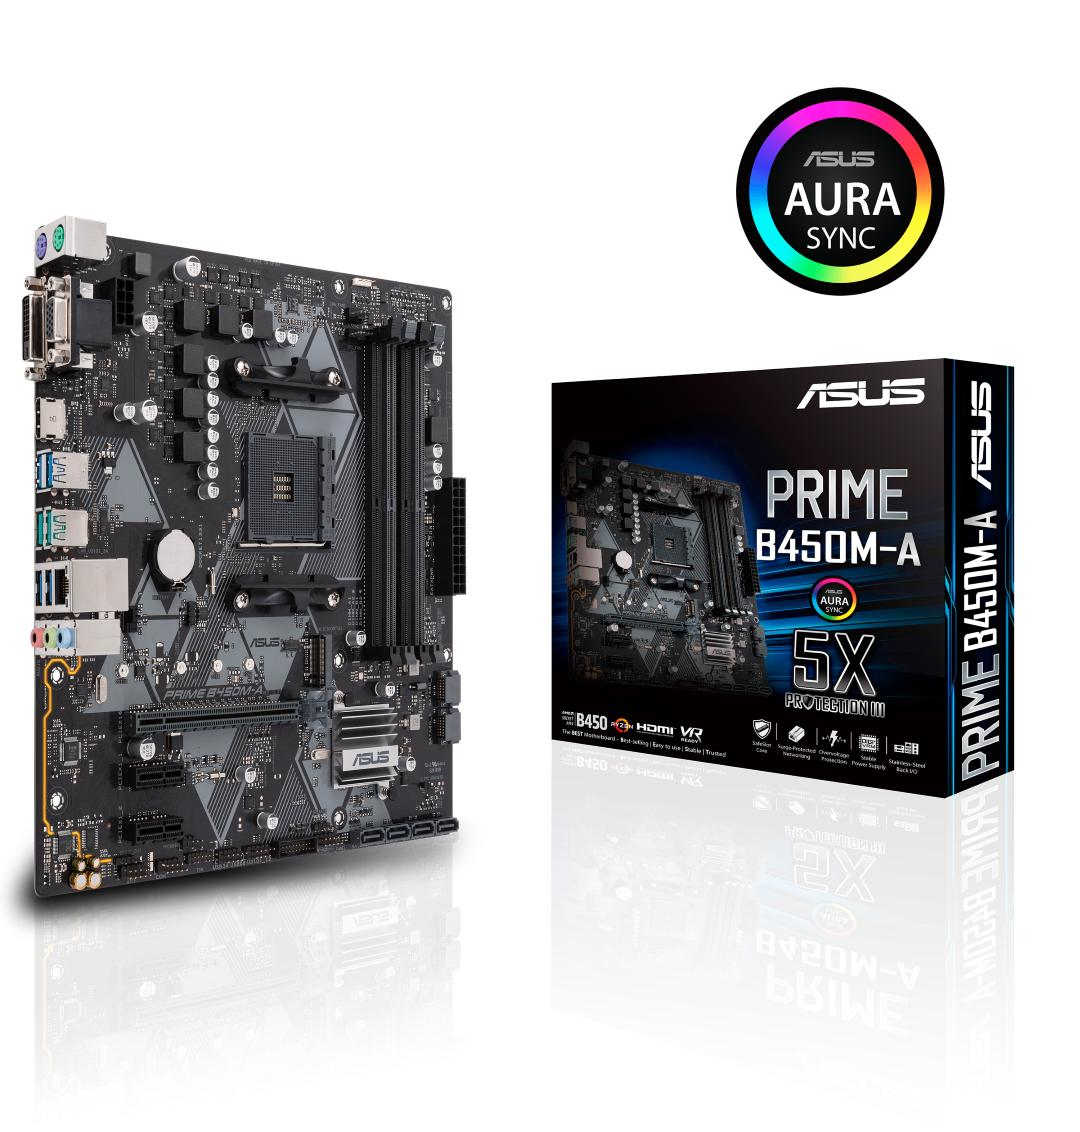 Asus PRIME B450M-A Micro ATX AM4 Motherboard